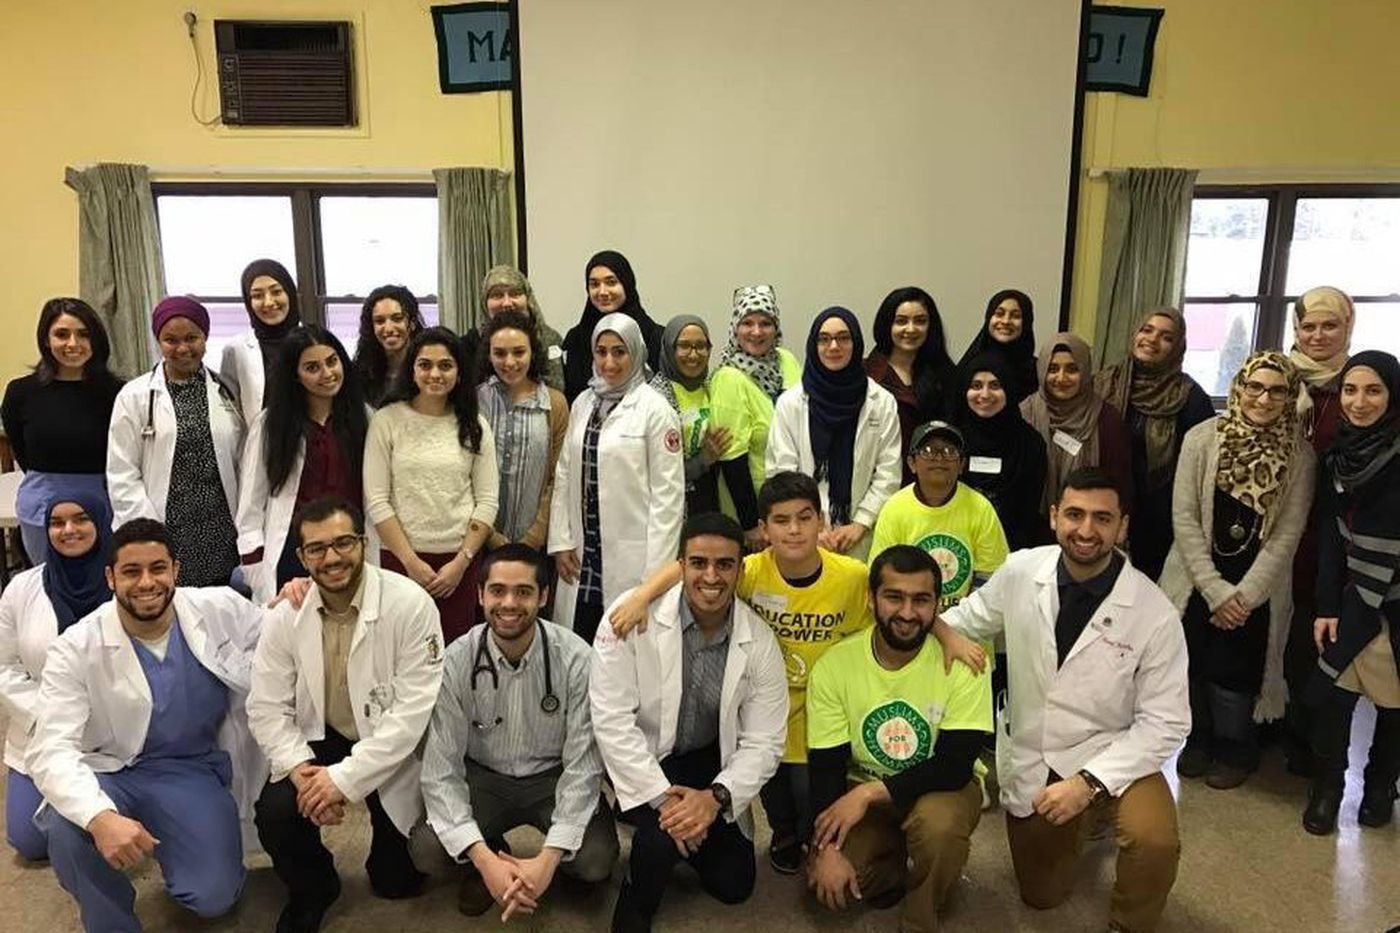 Islamic health clinic in Northeast Philly isn't letting intolerance stop it from opening